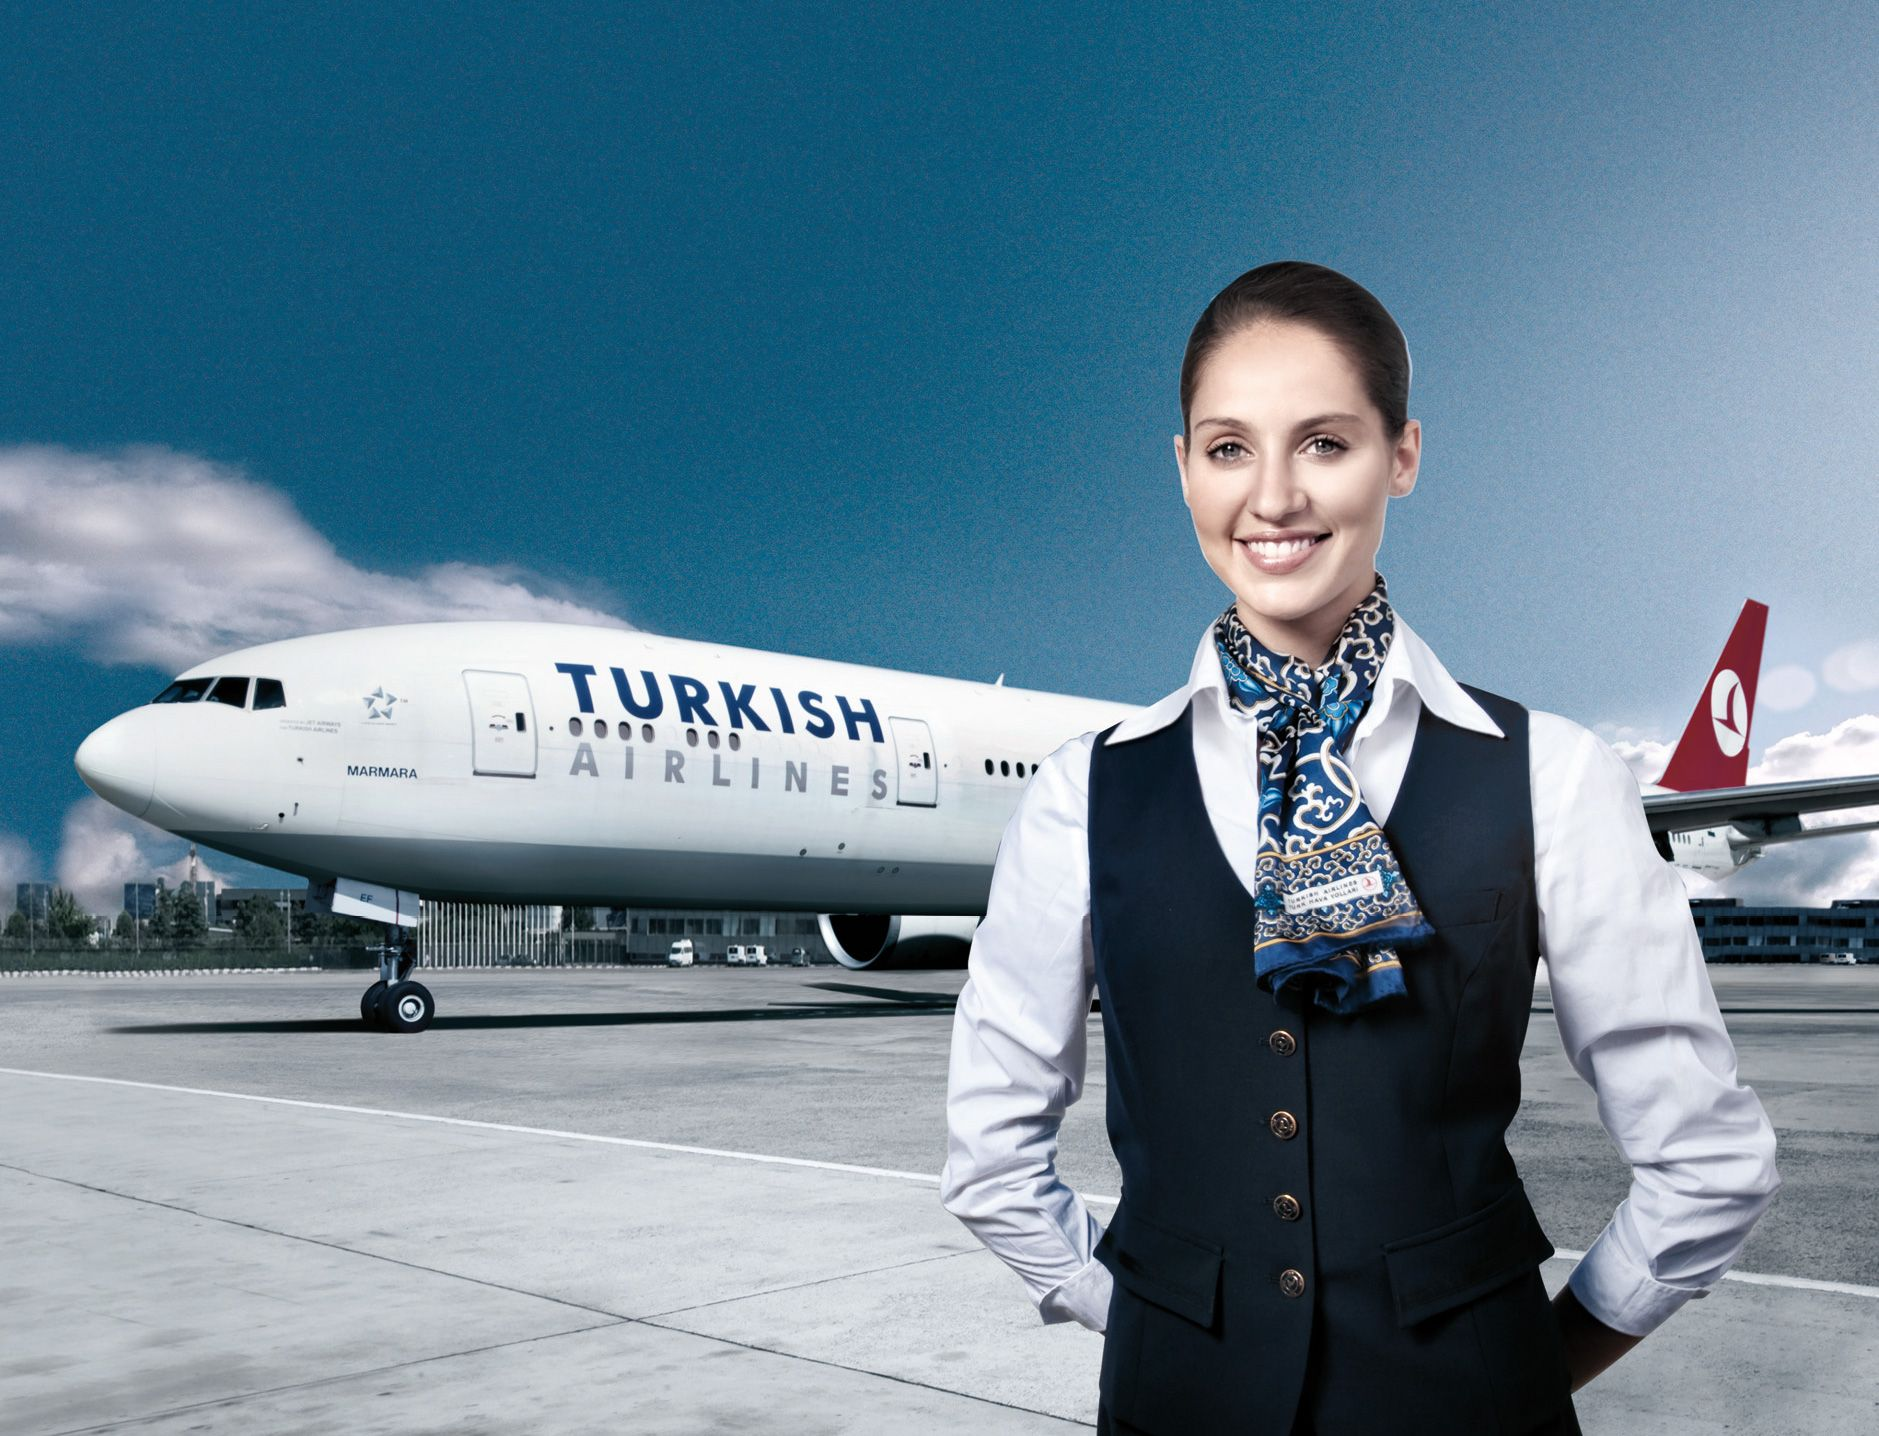 Image result for Turkish Airlines cabin crew uniform new